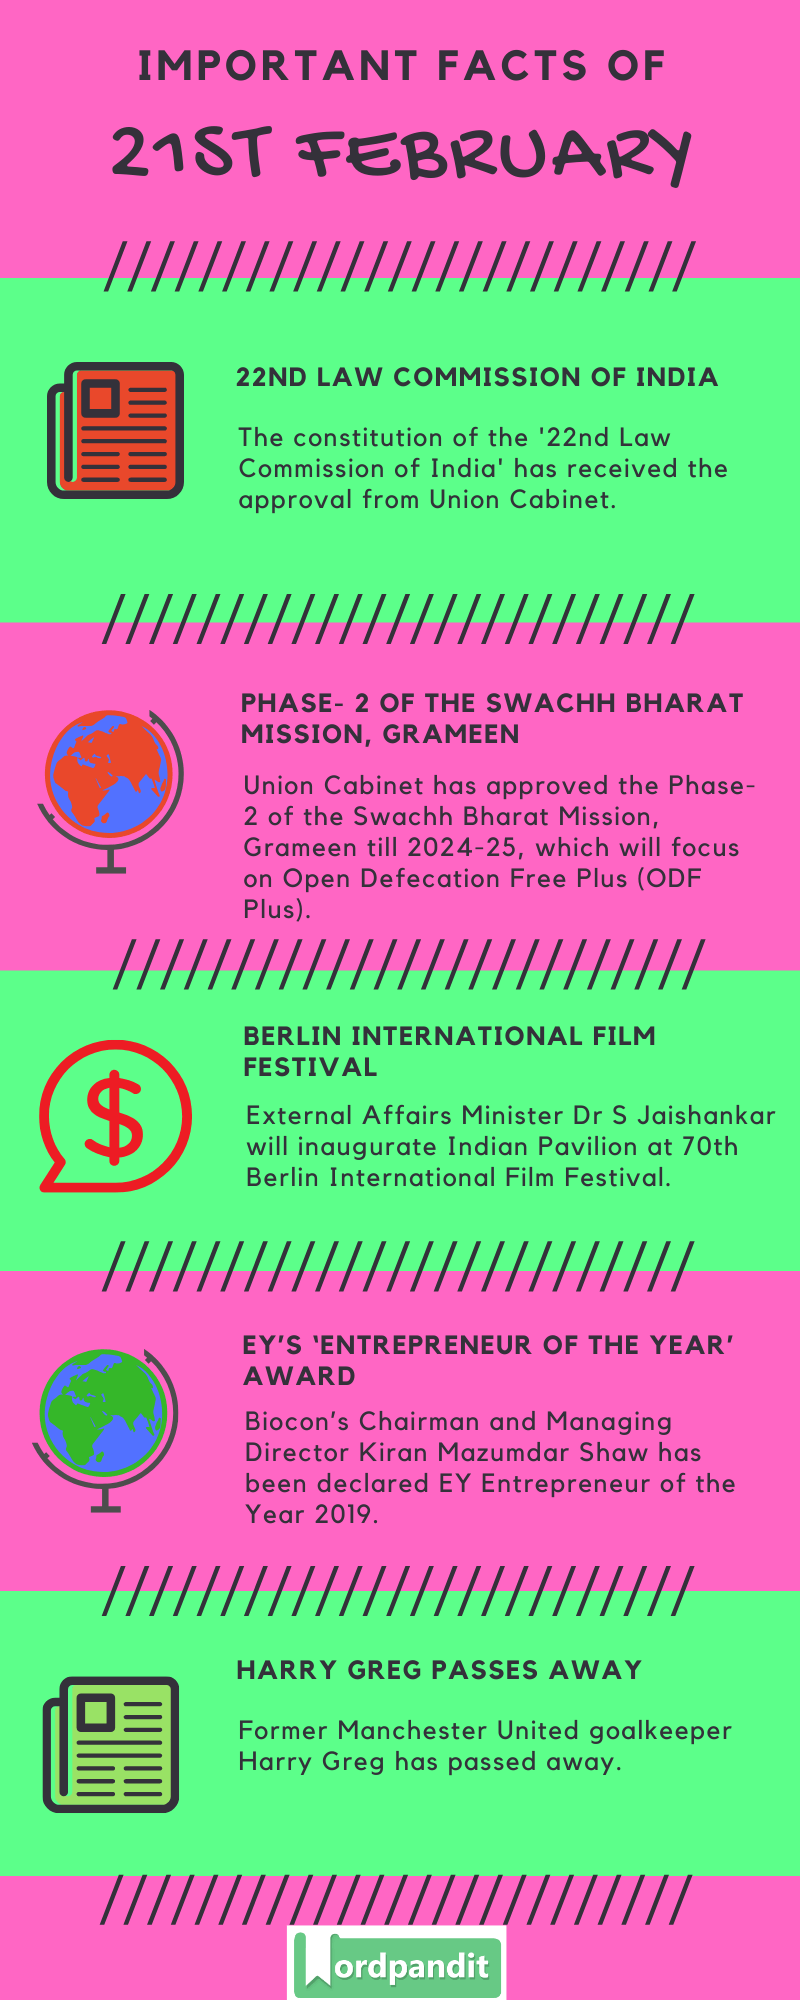 Daily Current Affairs 21 February 2020 Current Affairs Quiz 21 February 2020 Current Affairs Infographic